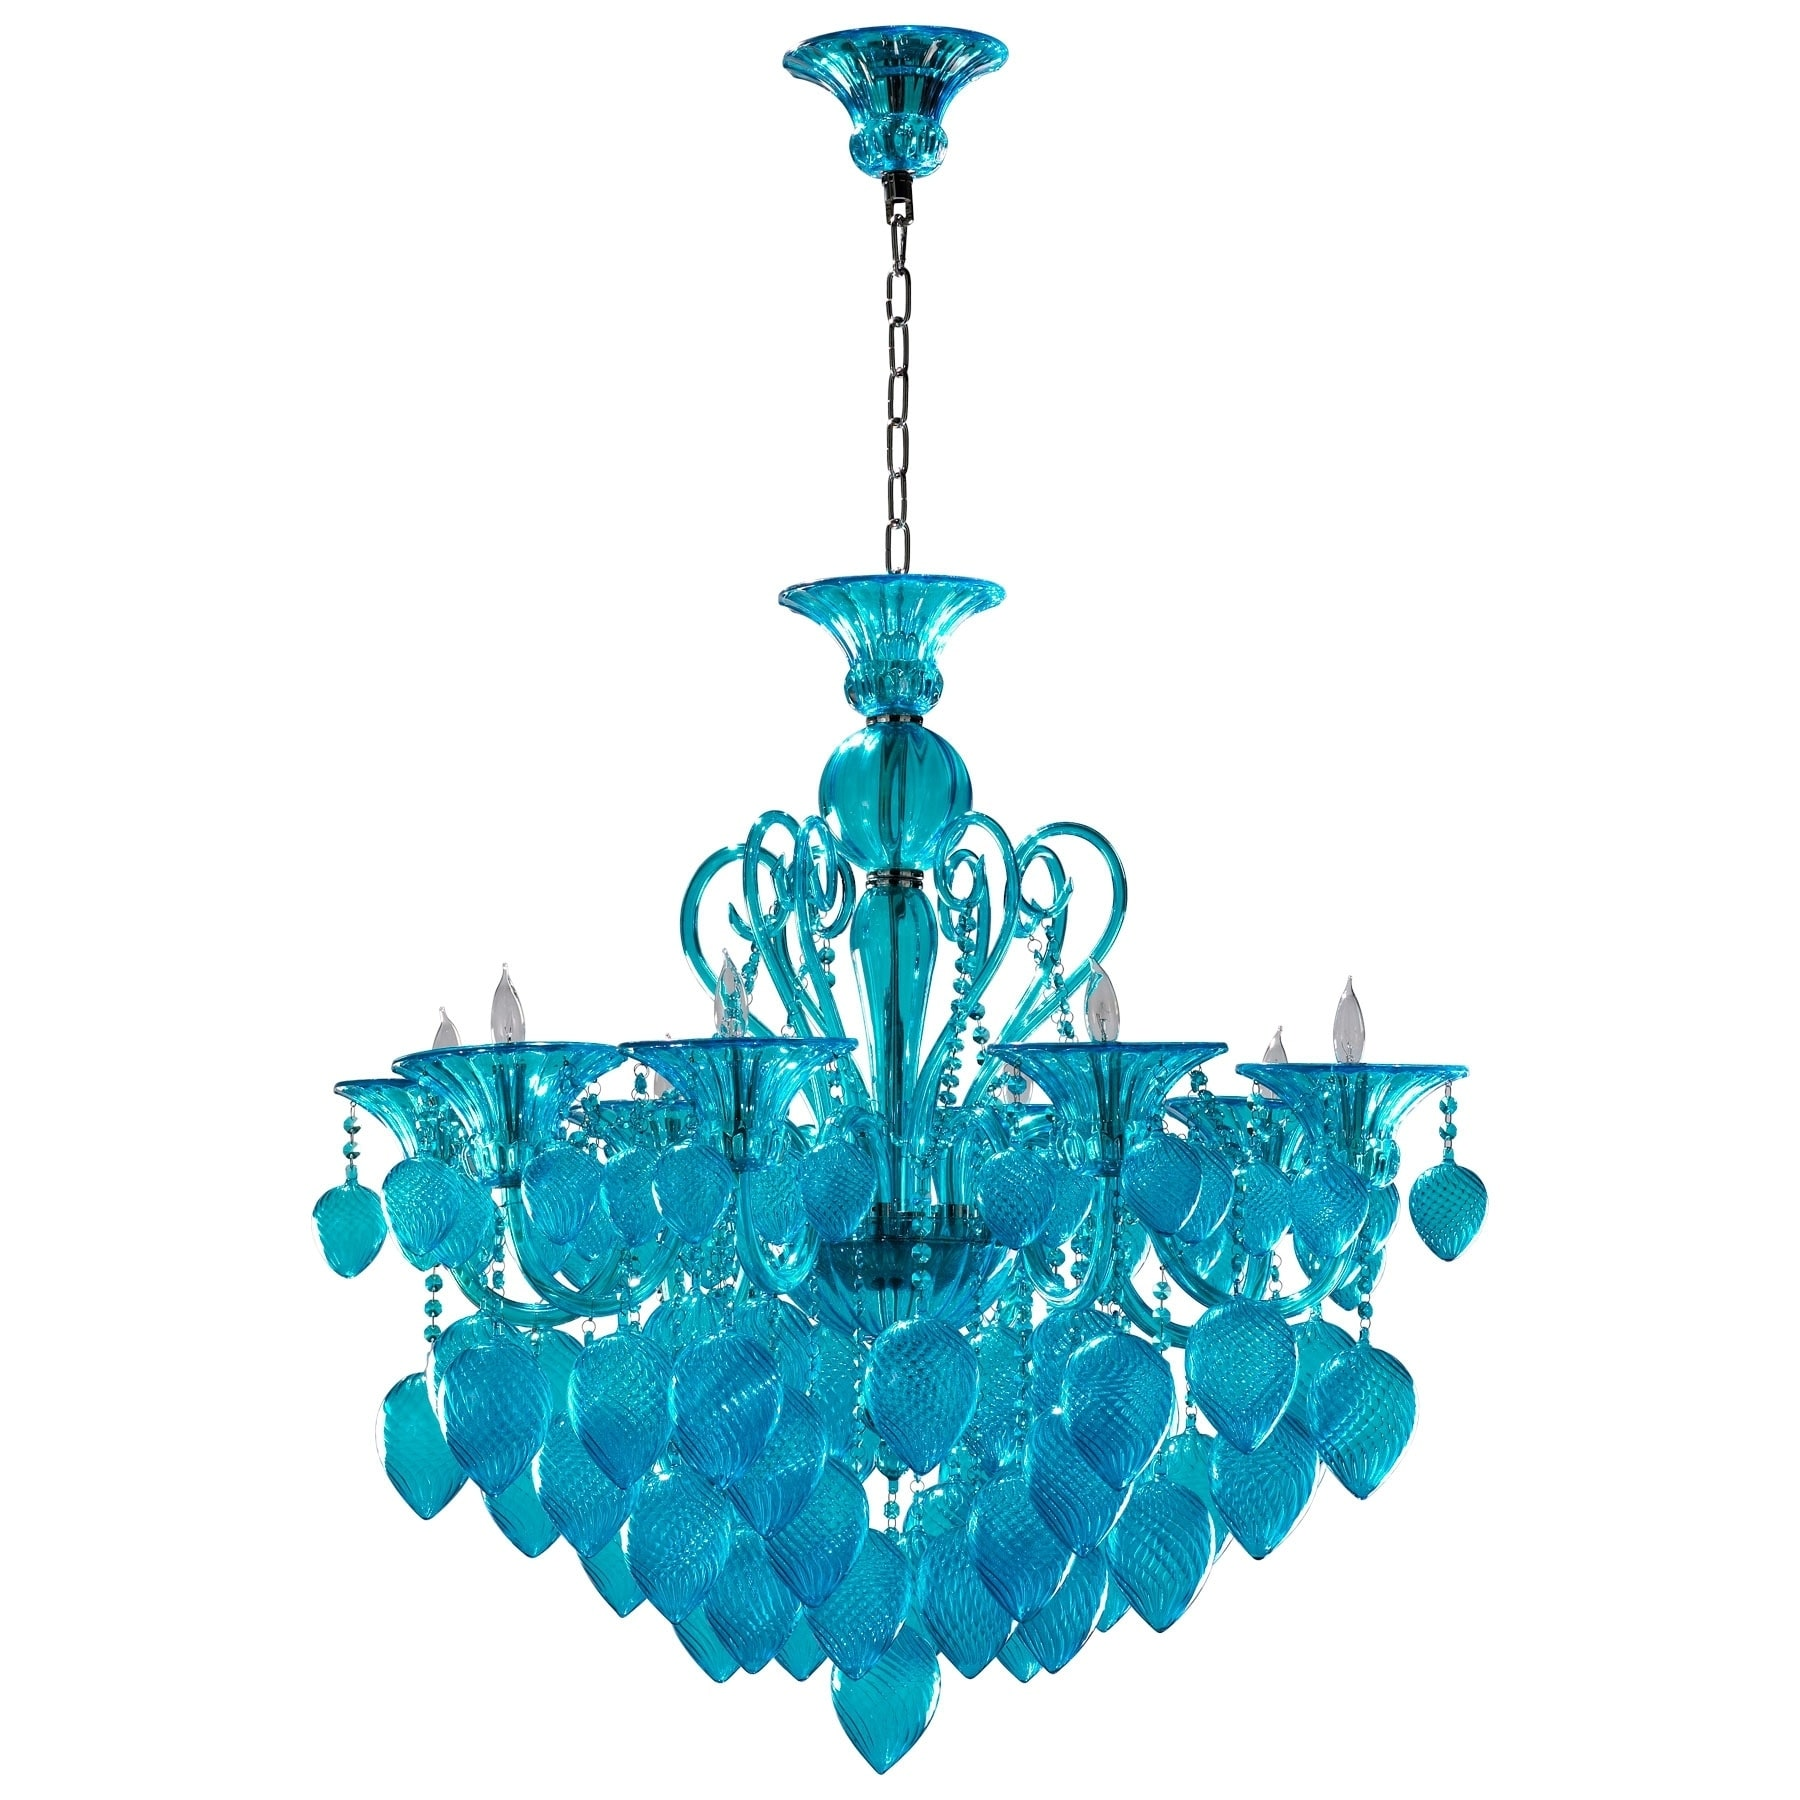 Bella Vetro Aqua Blue Glass Chandelier Free Shipping Today